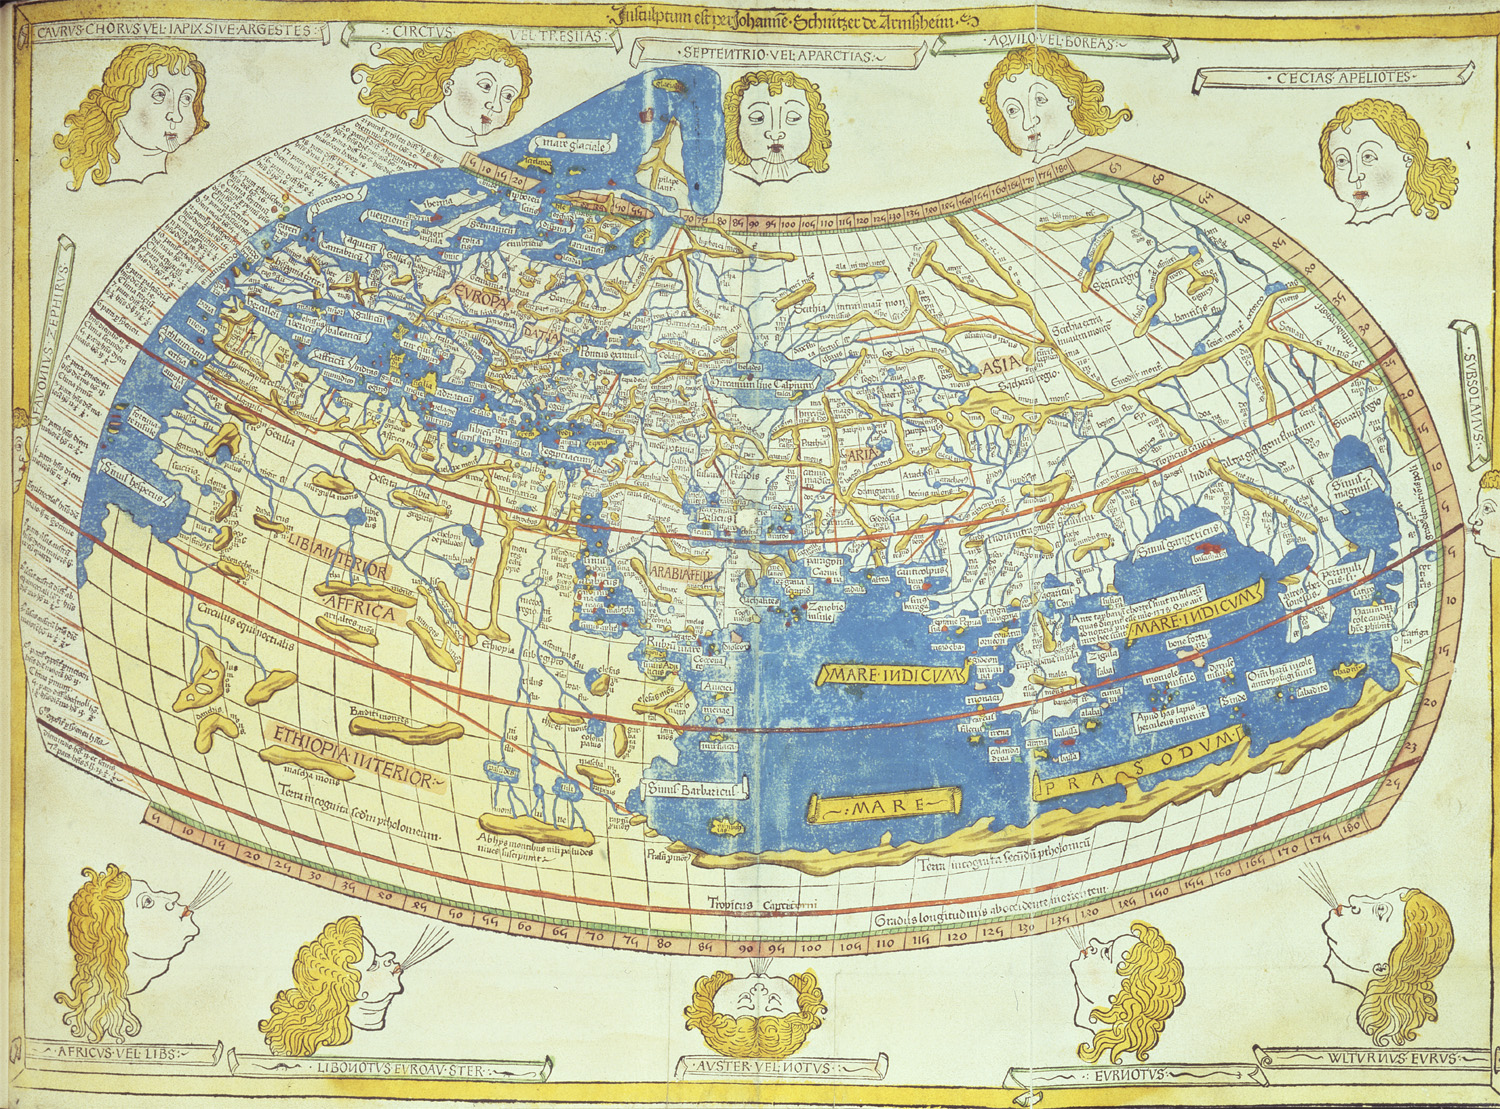 Image of Ptolemy's world map, 1482